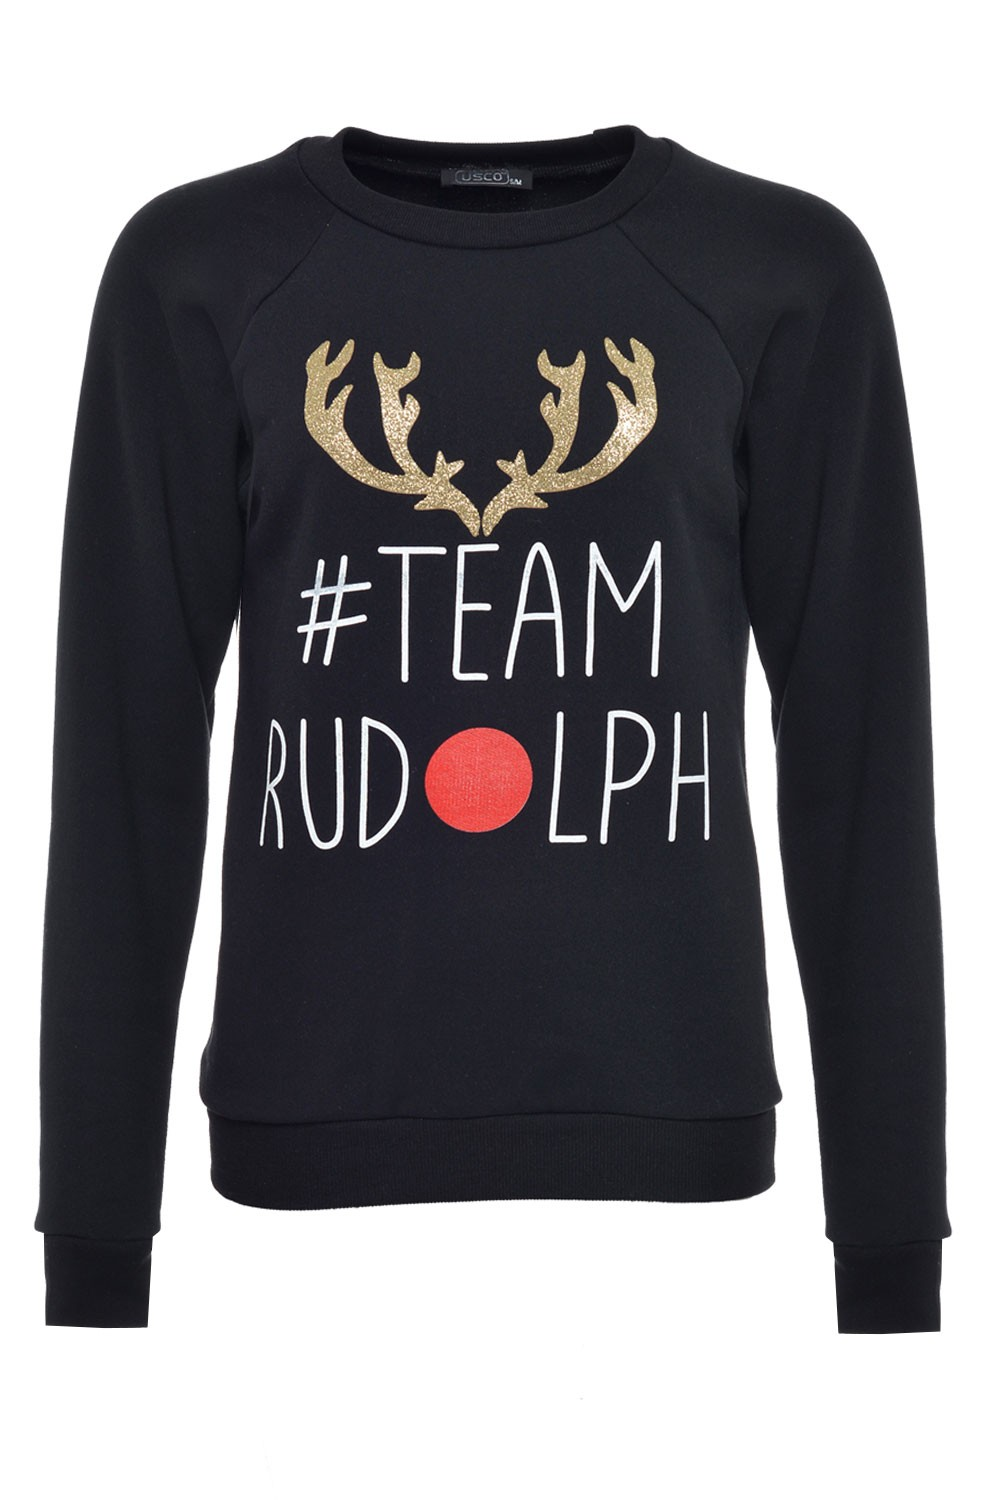 USCO Team Rudolph Christmas Sweater in Black